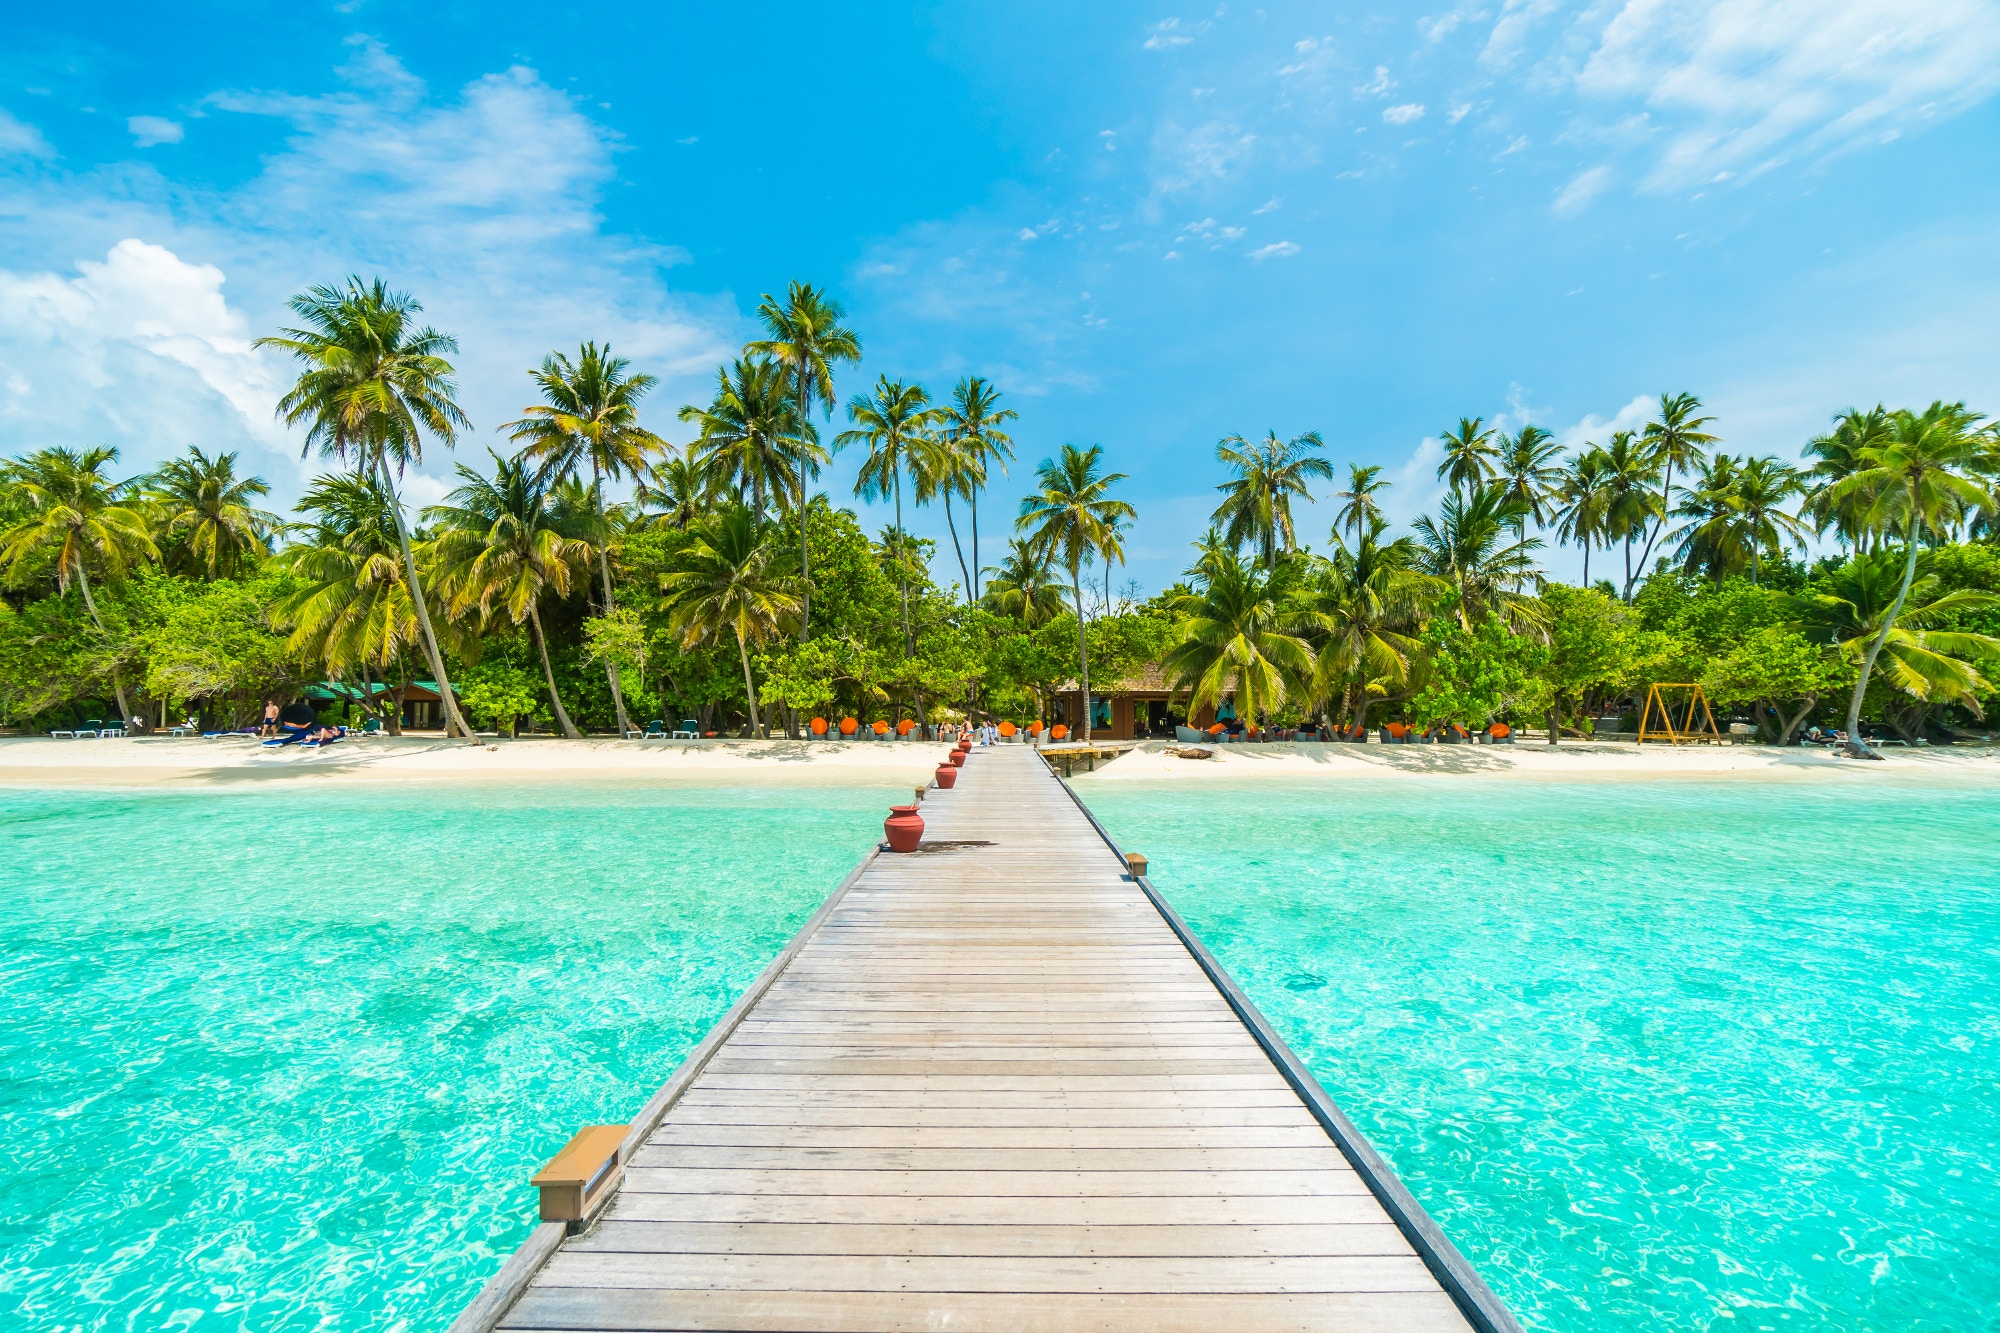 The Maldives may be one of the most Instagram-worthy locations © Food Travel Stockforlife / Shutterstock